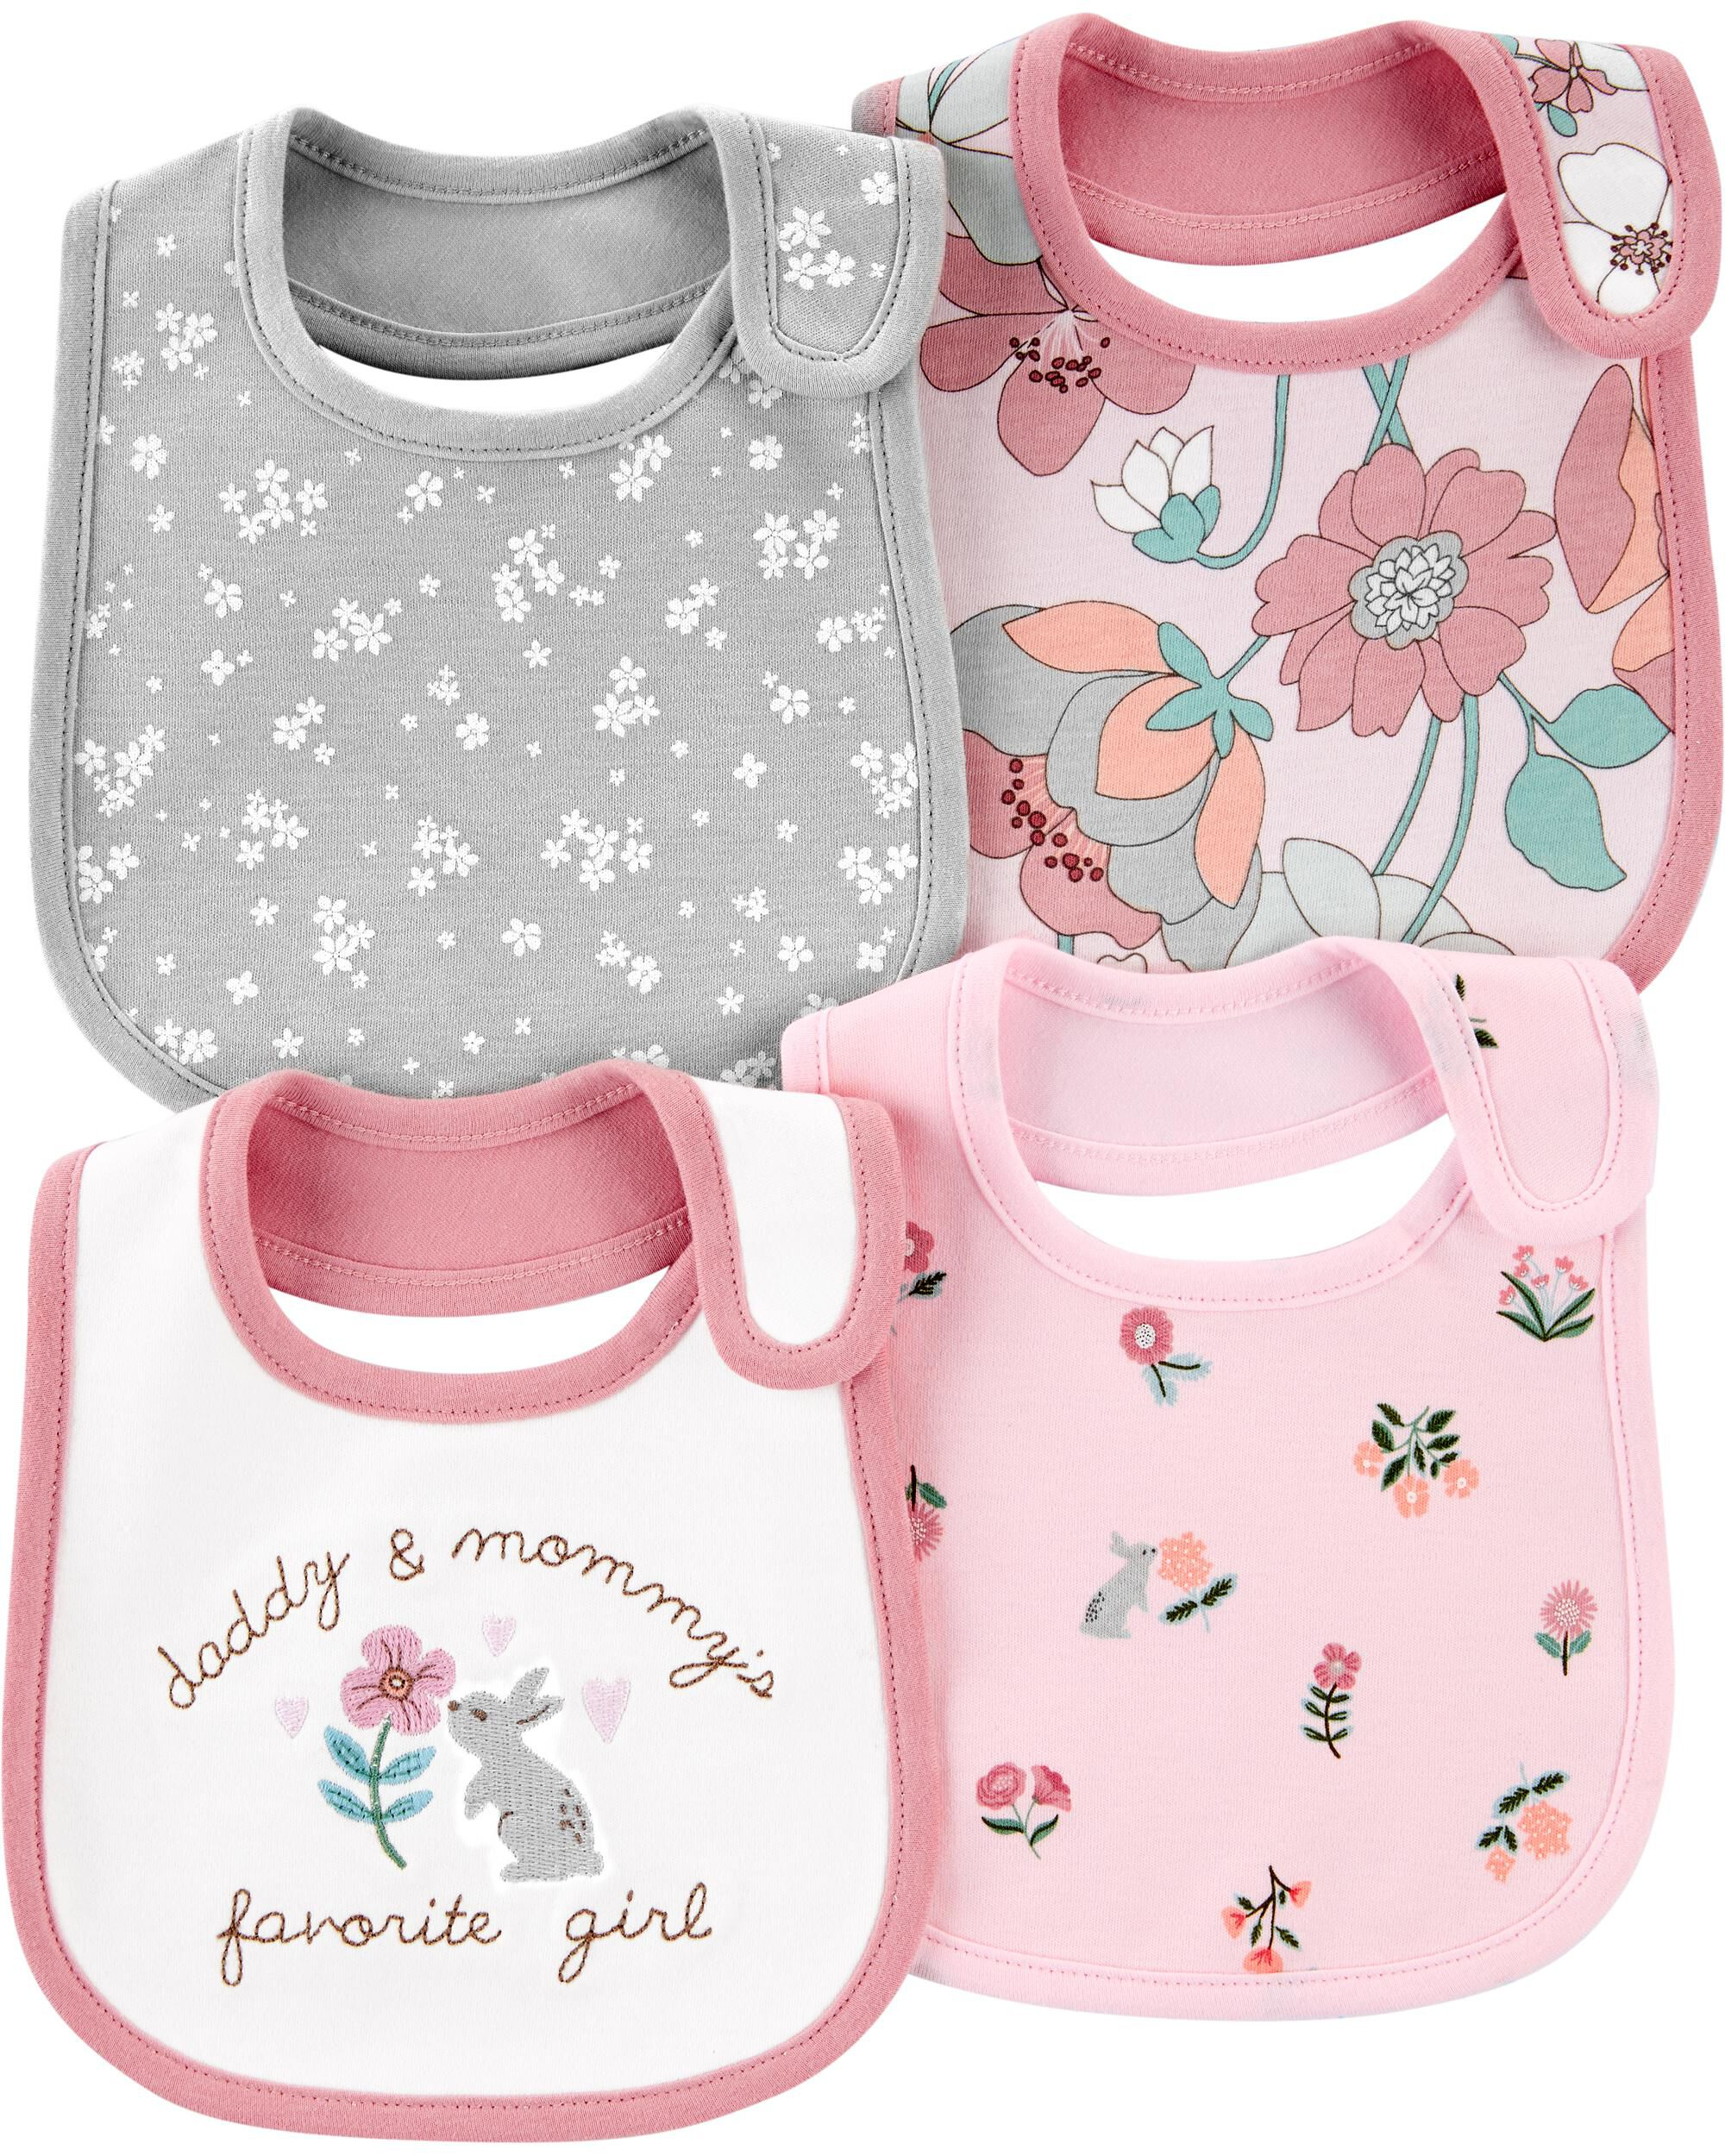 Oshkoshbgosh 4-Pack Floral Teething Bibs